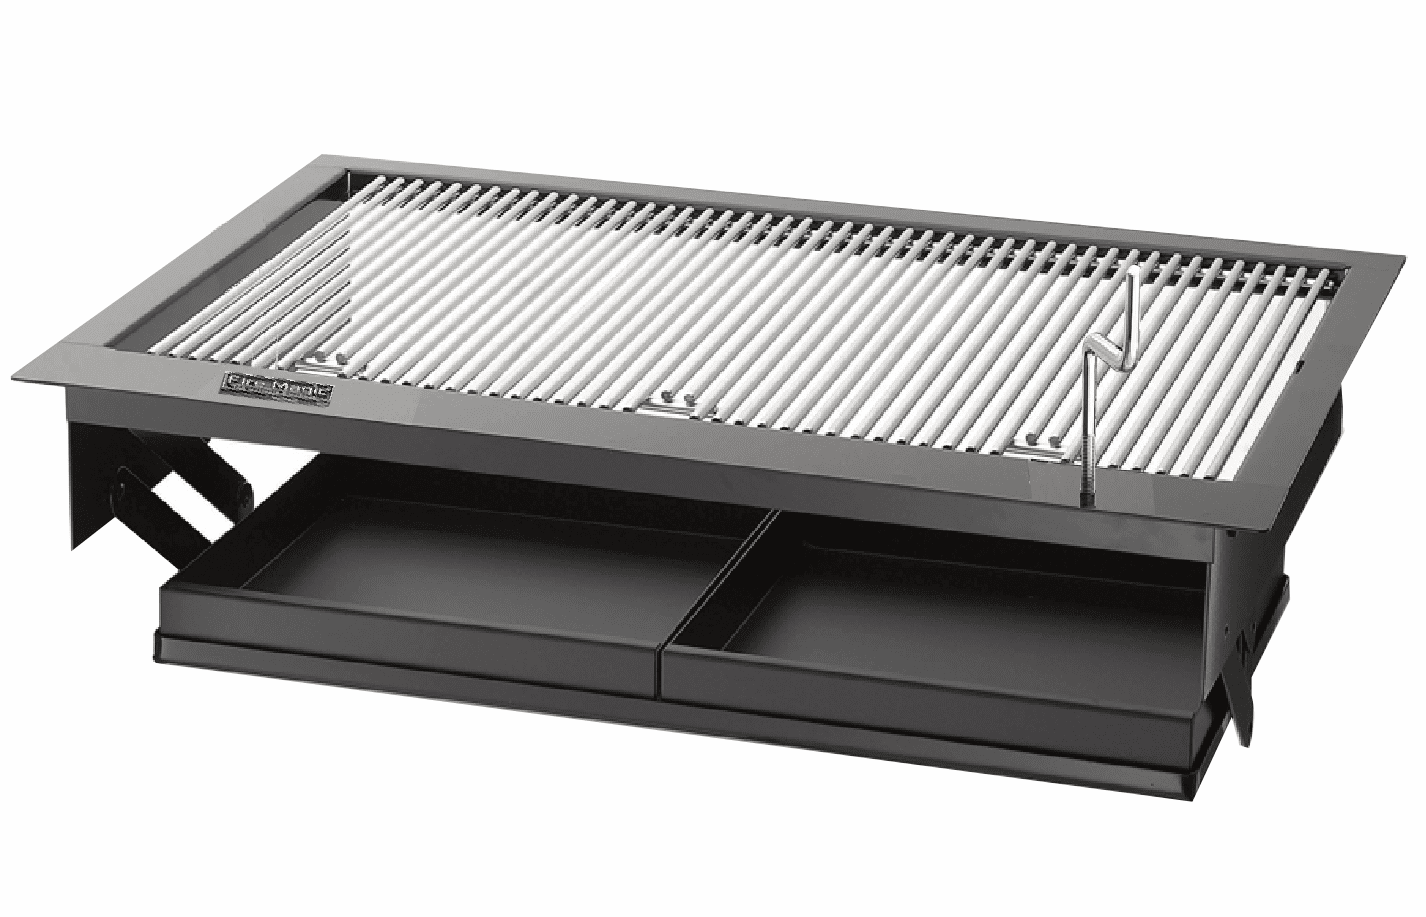 Fire Magic charcoal grill drop in 3329 23 inch